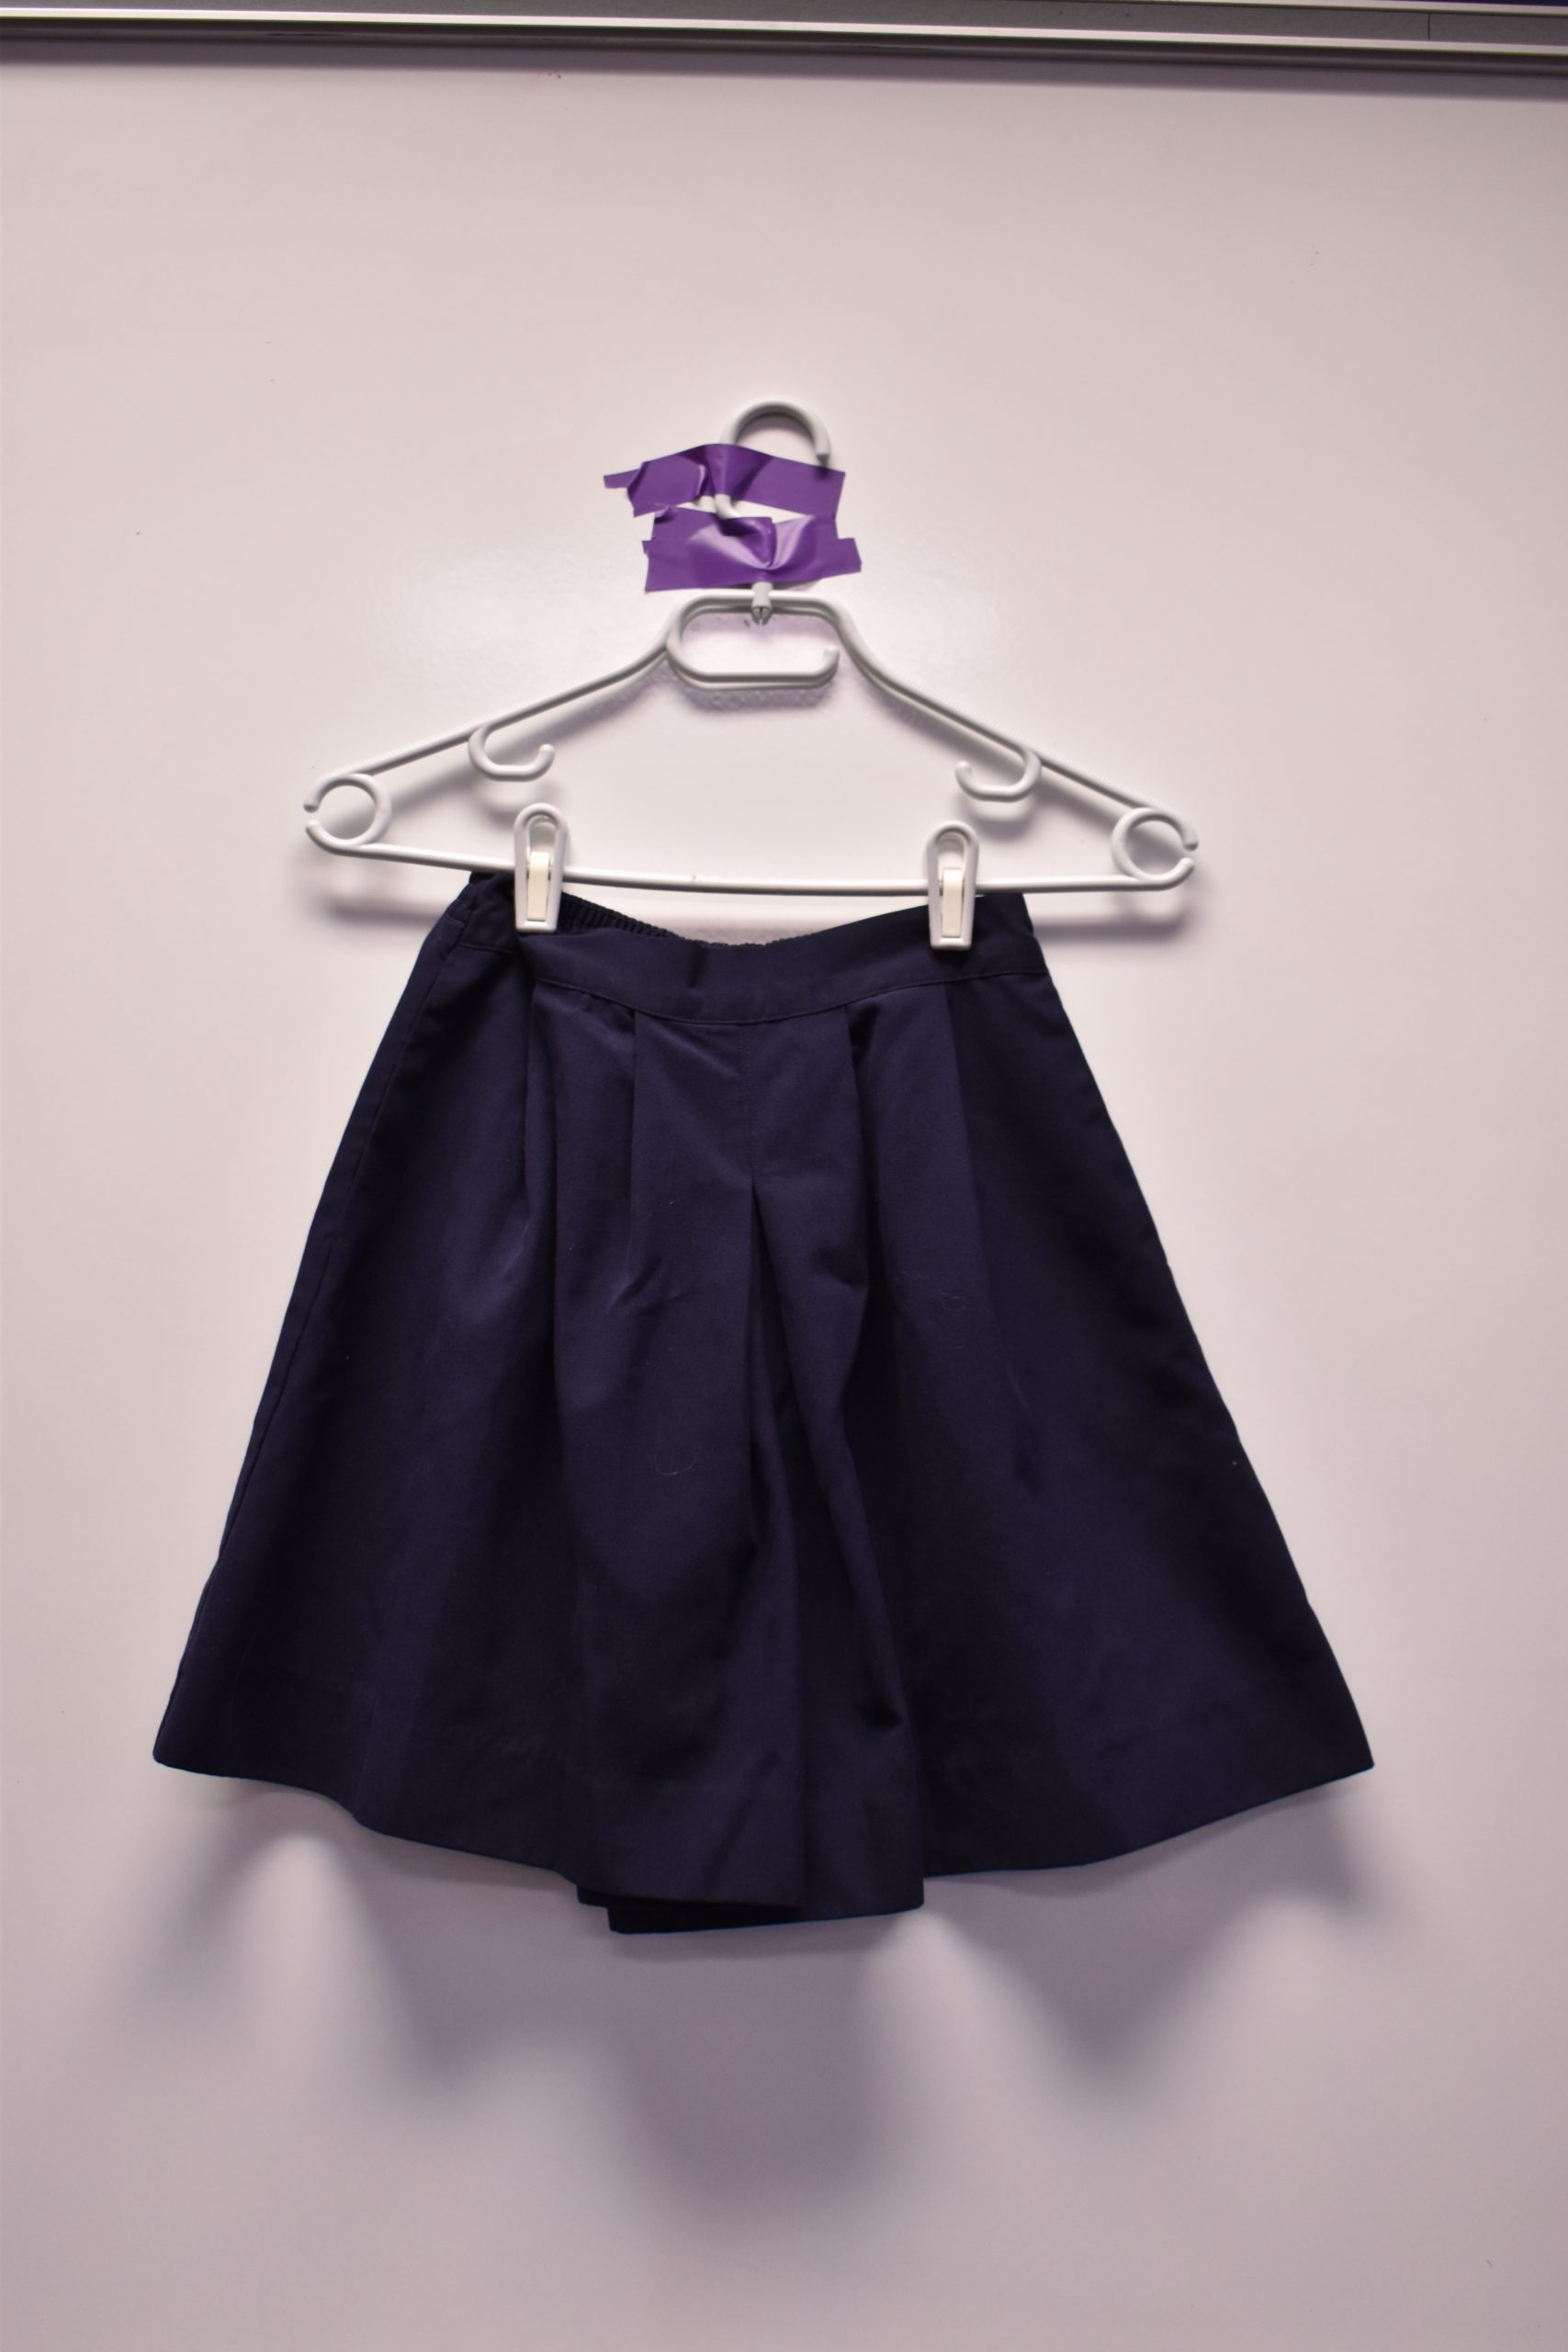 Christian Academy School System | Christian Academy of Louisville | Virtual Uniform Closet | Uniform | Middle School Girls Navy Skirt